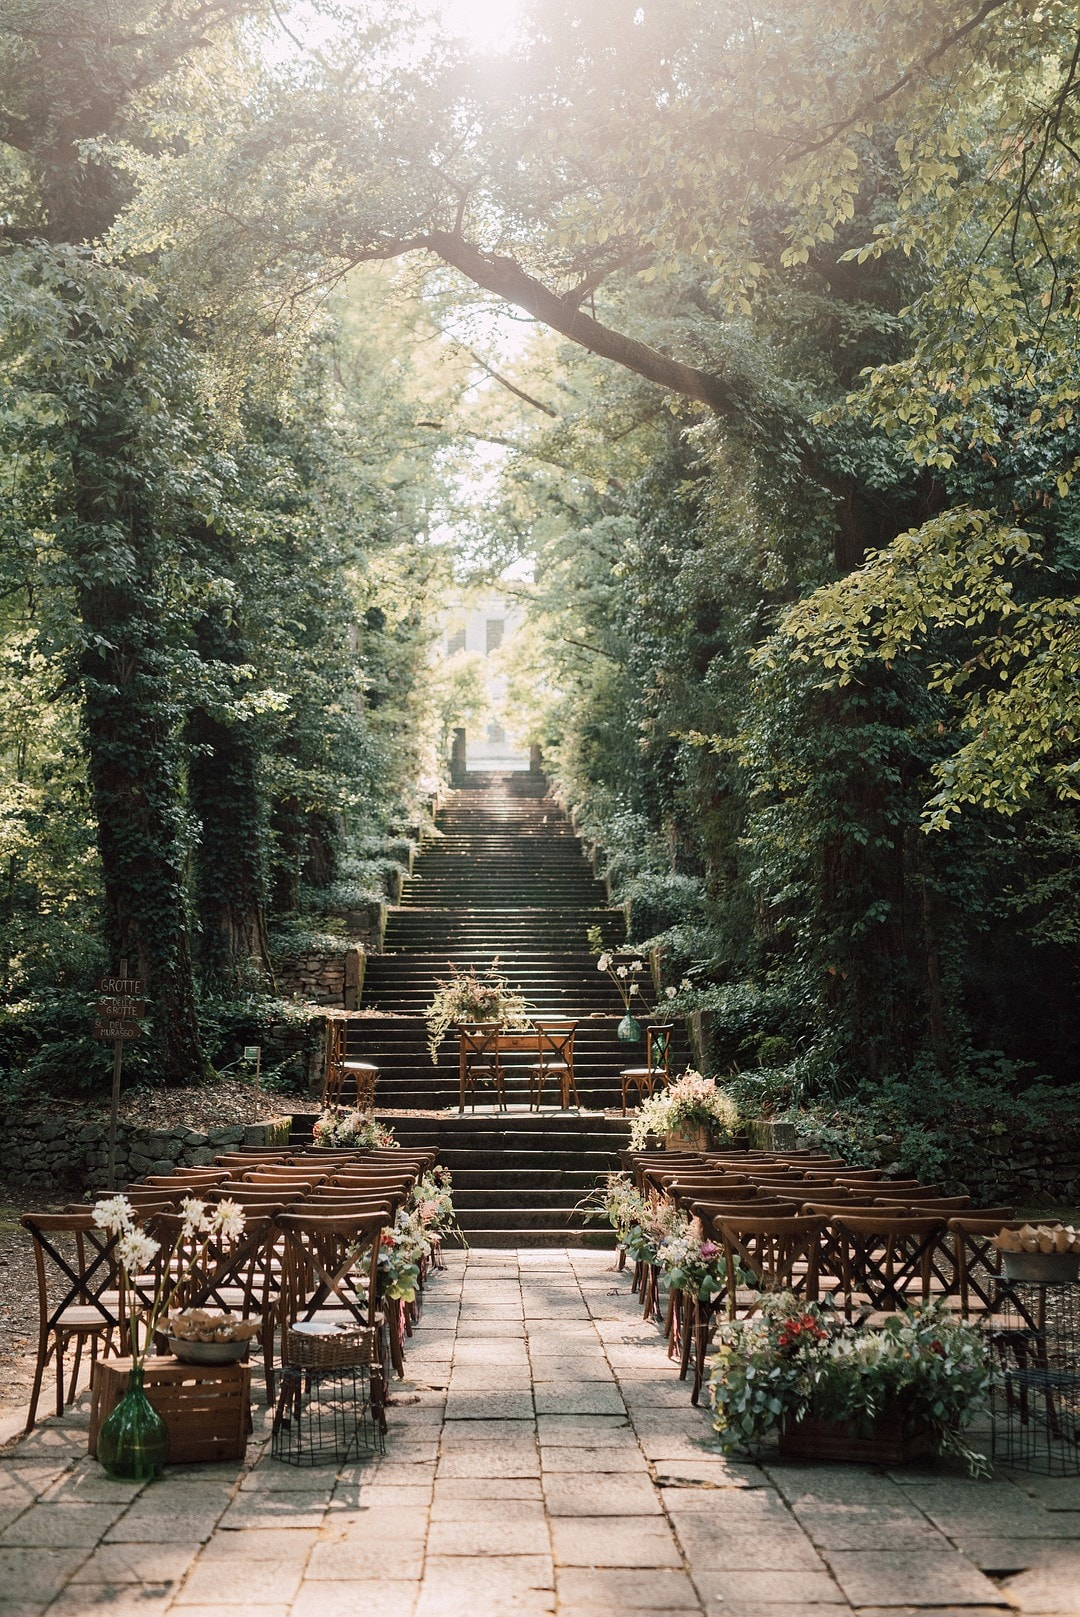 Ilaria and Andrea's Beautiful Destination Wedding at Villa Papafava Frassanelle, Photography by Serena Genovese for Luxury Destination Wedding network Adriana Weddings